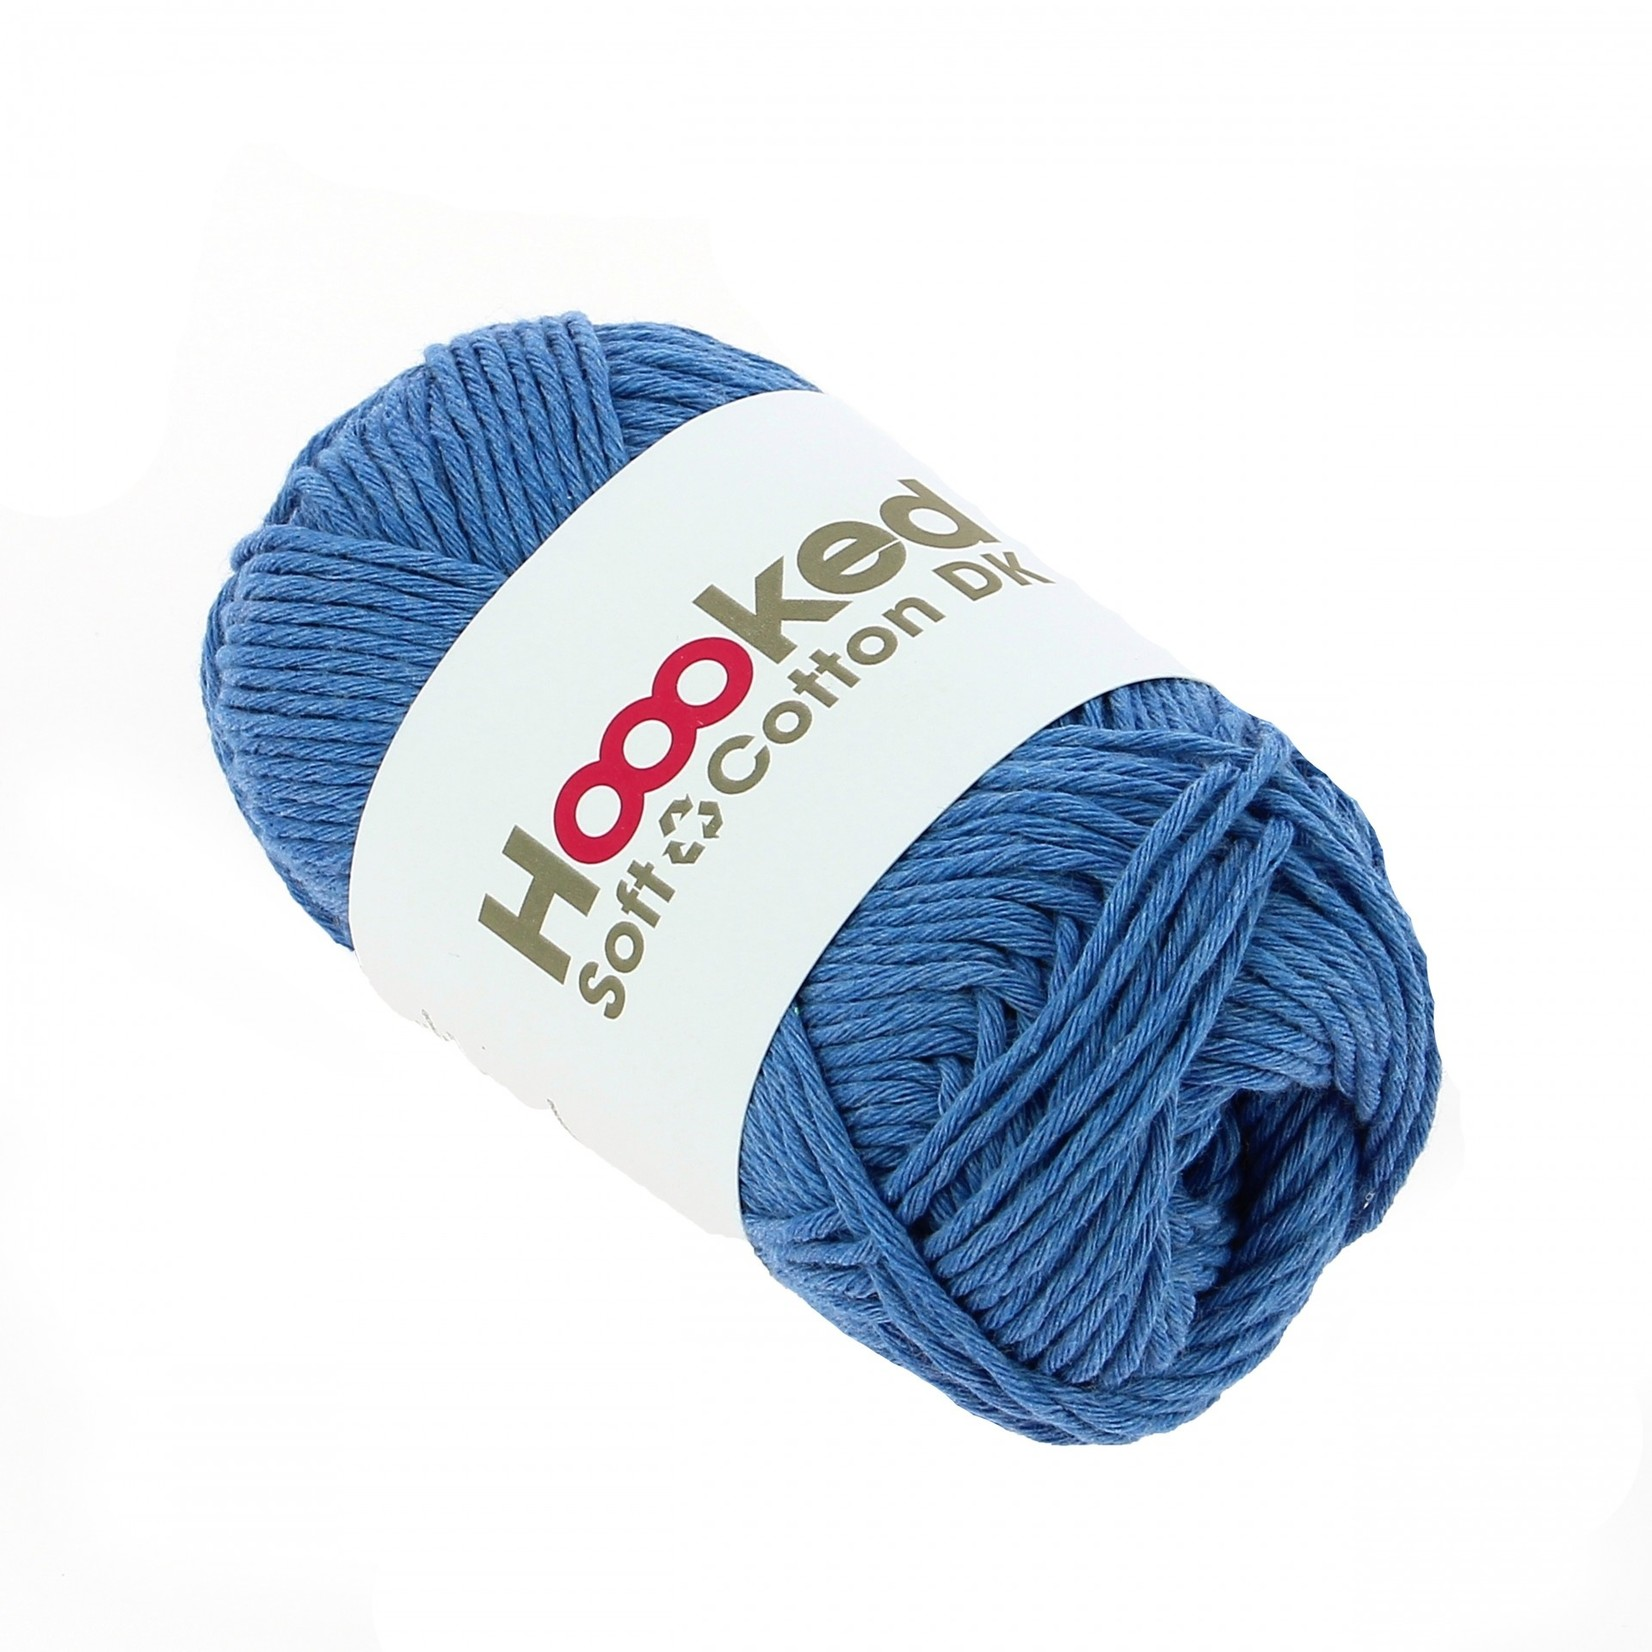 Hoooked Hoooked Soft Cotton DK Mexico Sky 50 gr. / 85 m.